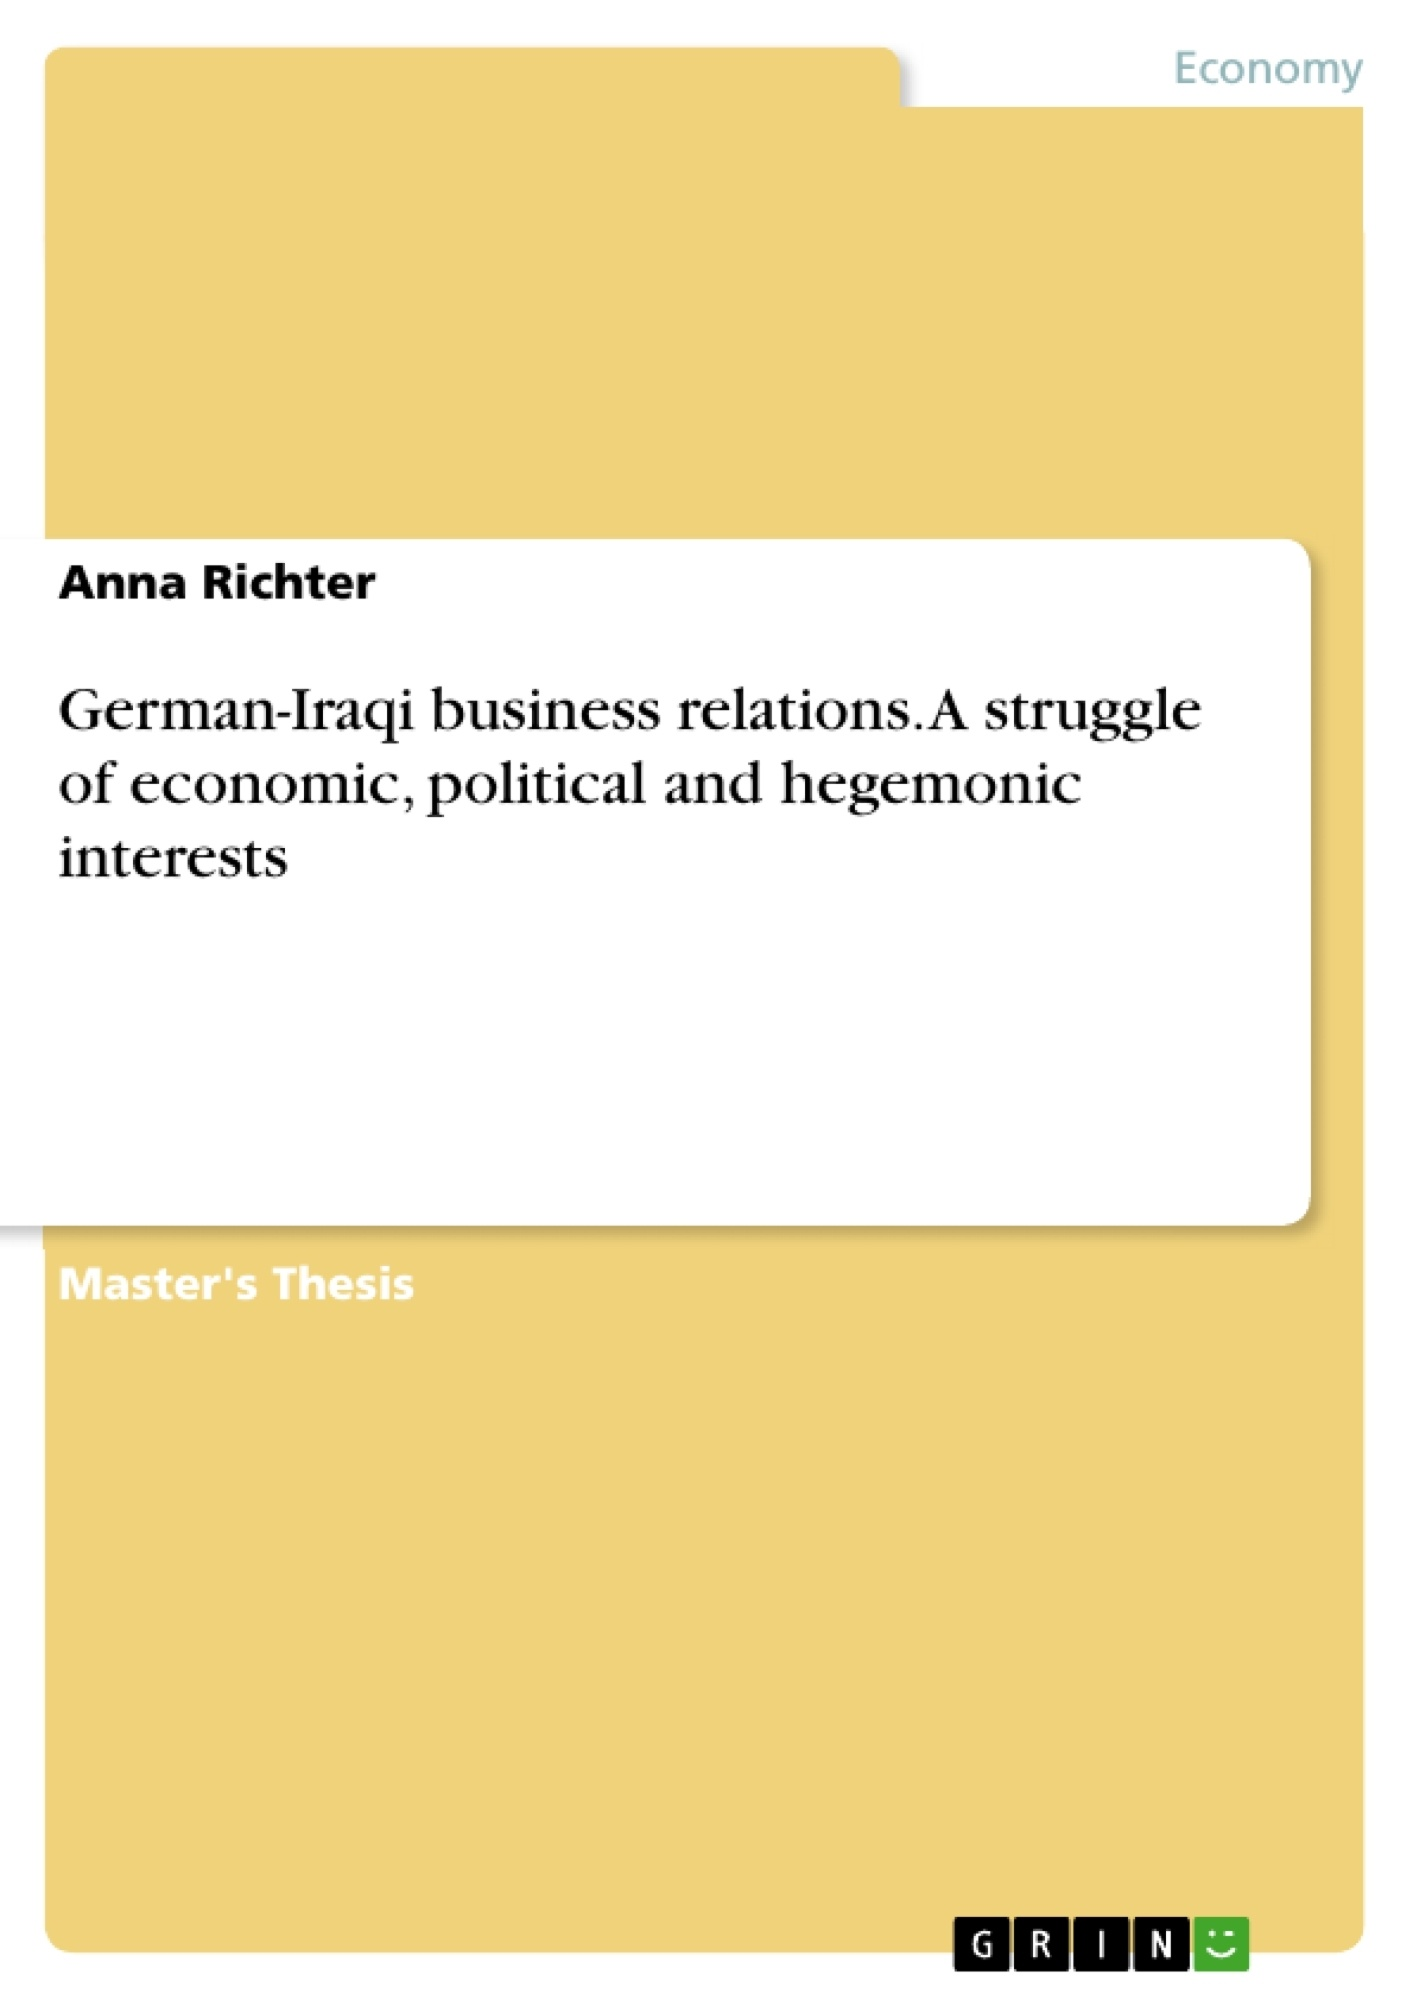 Title: German-Iraqi business relations. A struggle of economic, political and hegemonic interests